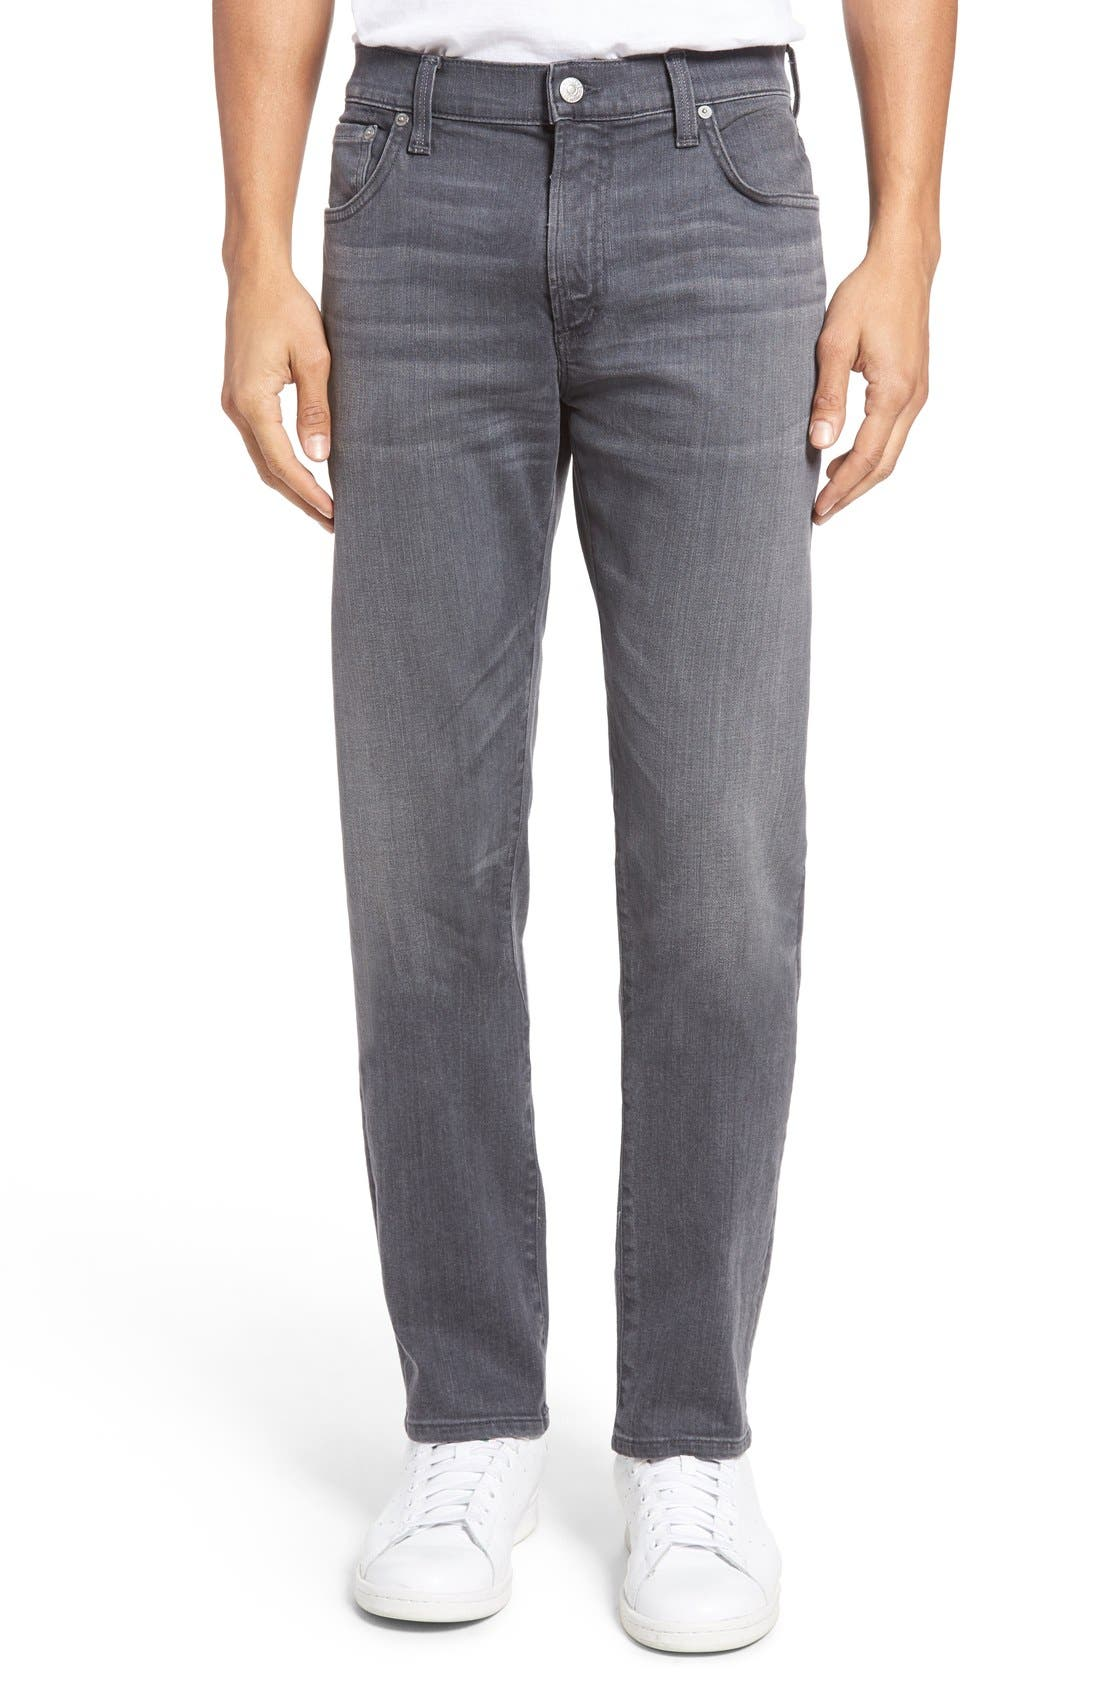 Alternate Image 1 Selected - Citizens of Humanity Core Slim Fit Jeans (Laos)